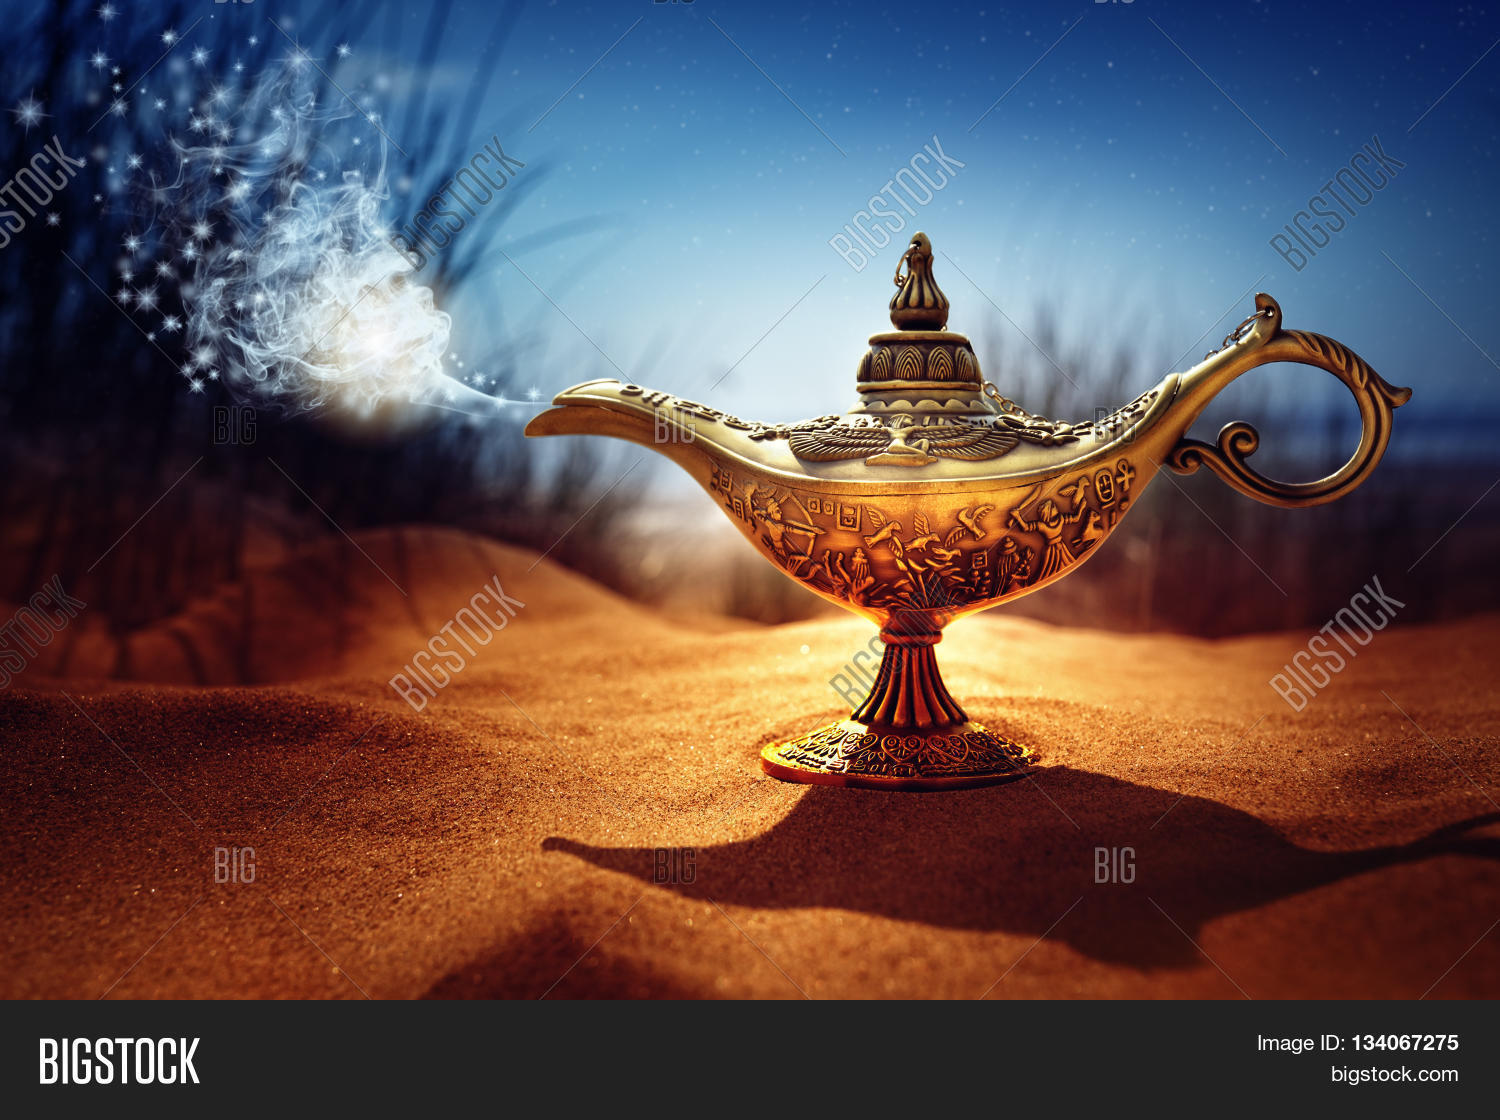 Magic Lamp In The Desert From The Story Of Aladdin With Genie Appearing In  Blue Smoke